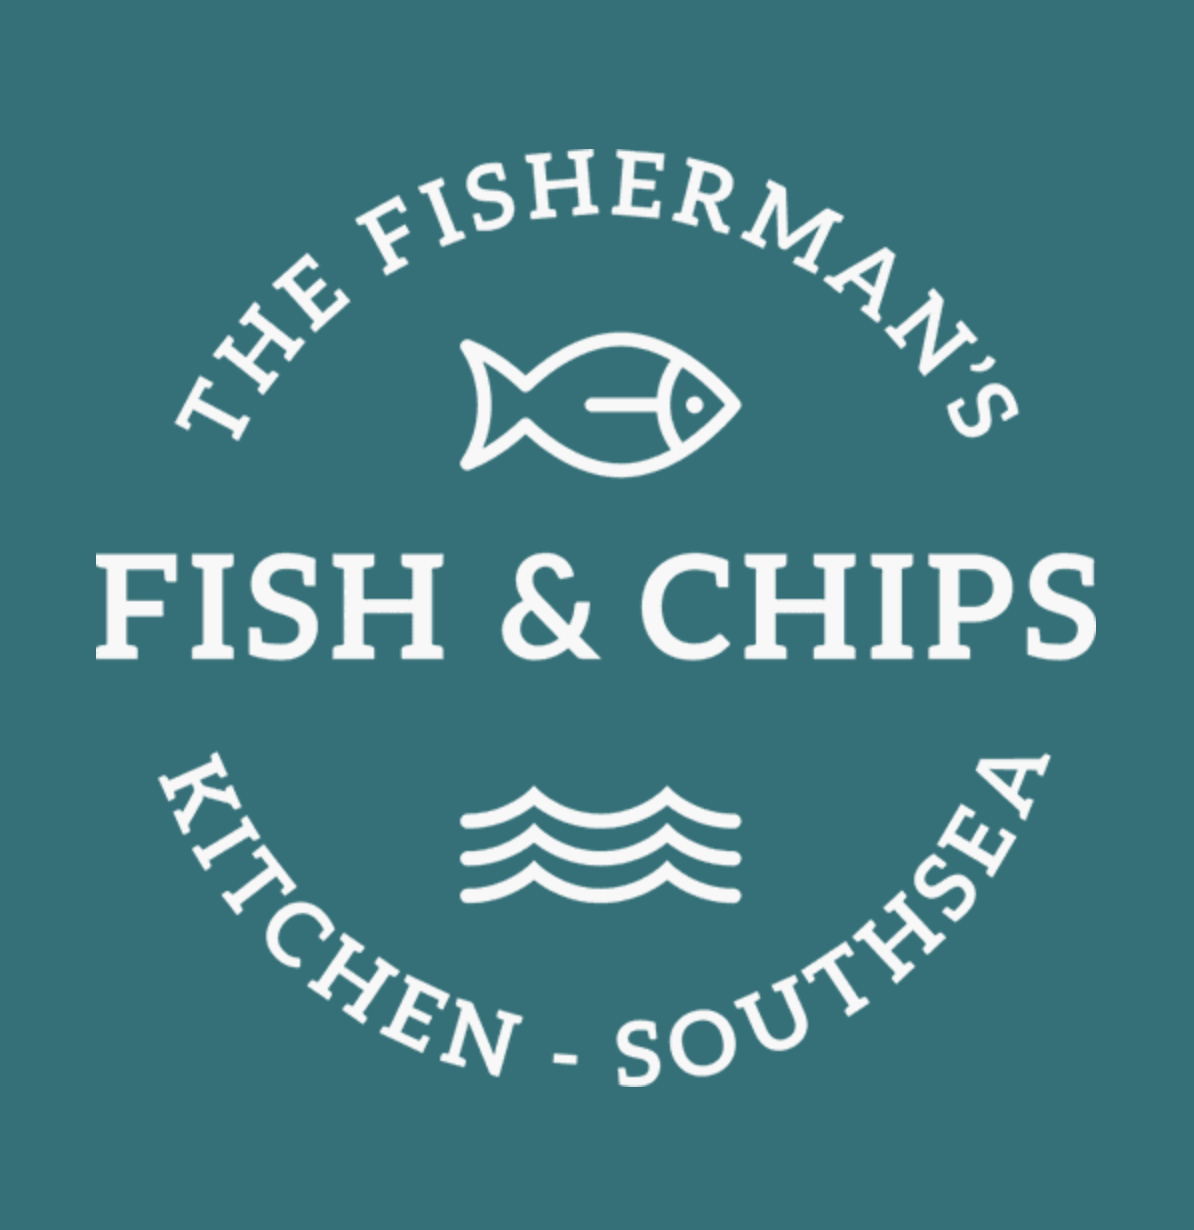 The Fisherman S Kitchen Southsea